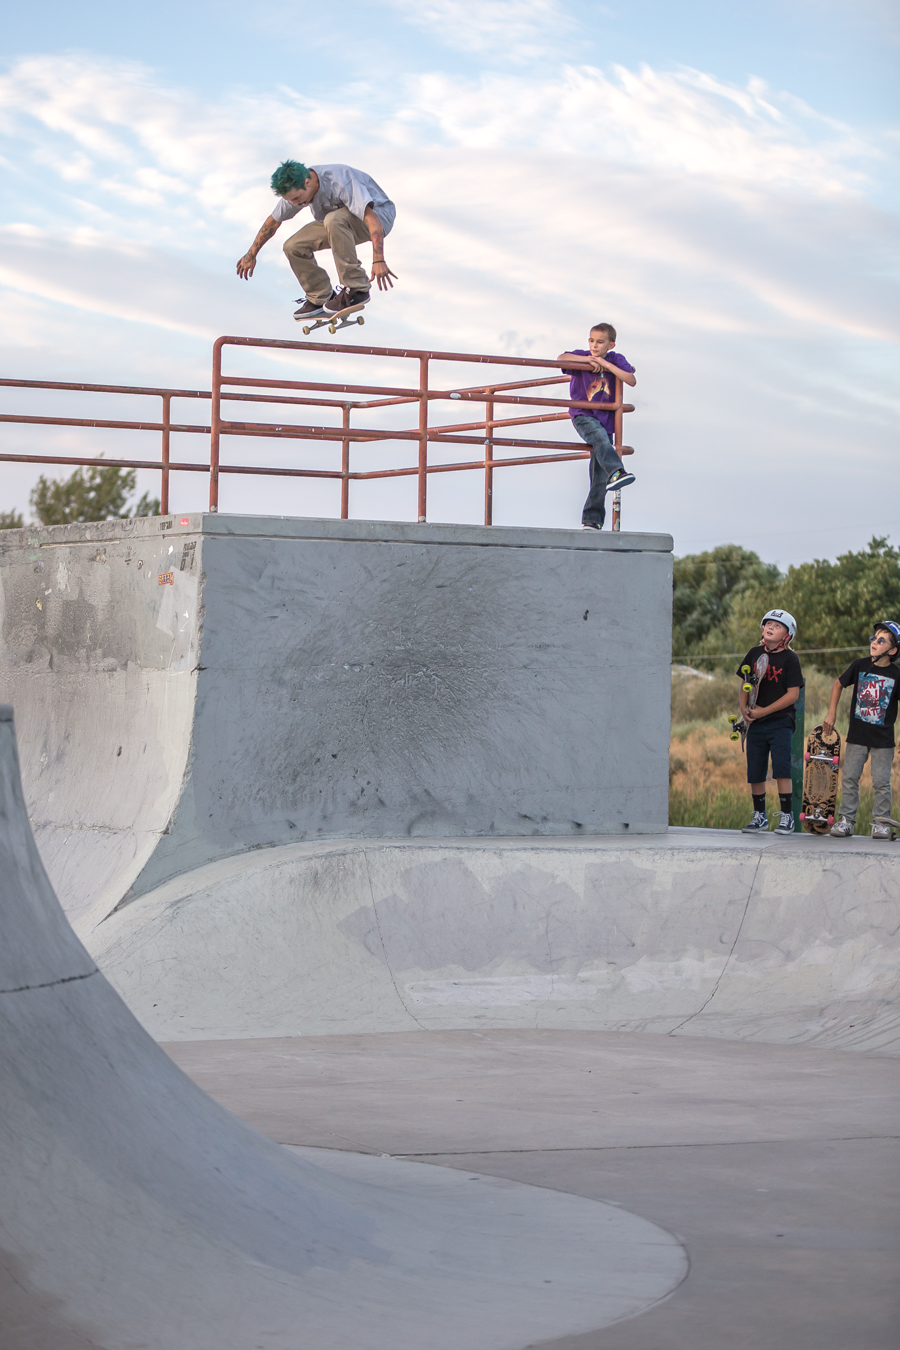 Tail Drop at Mira Loma